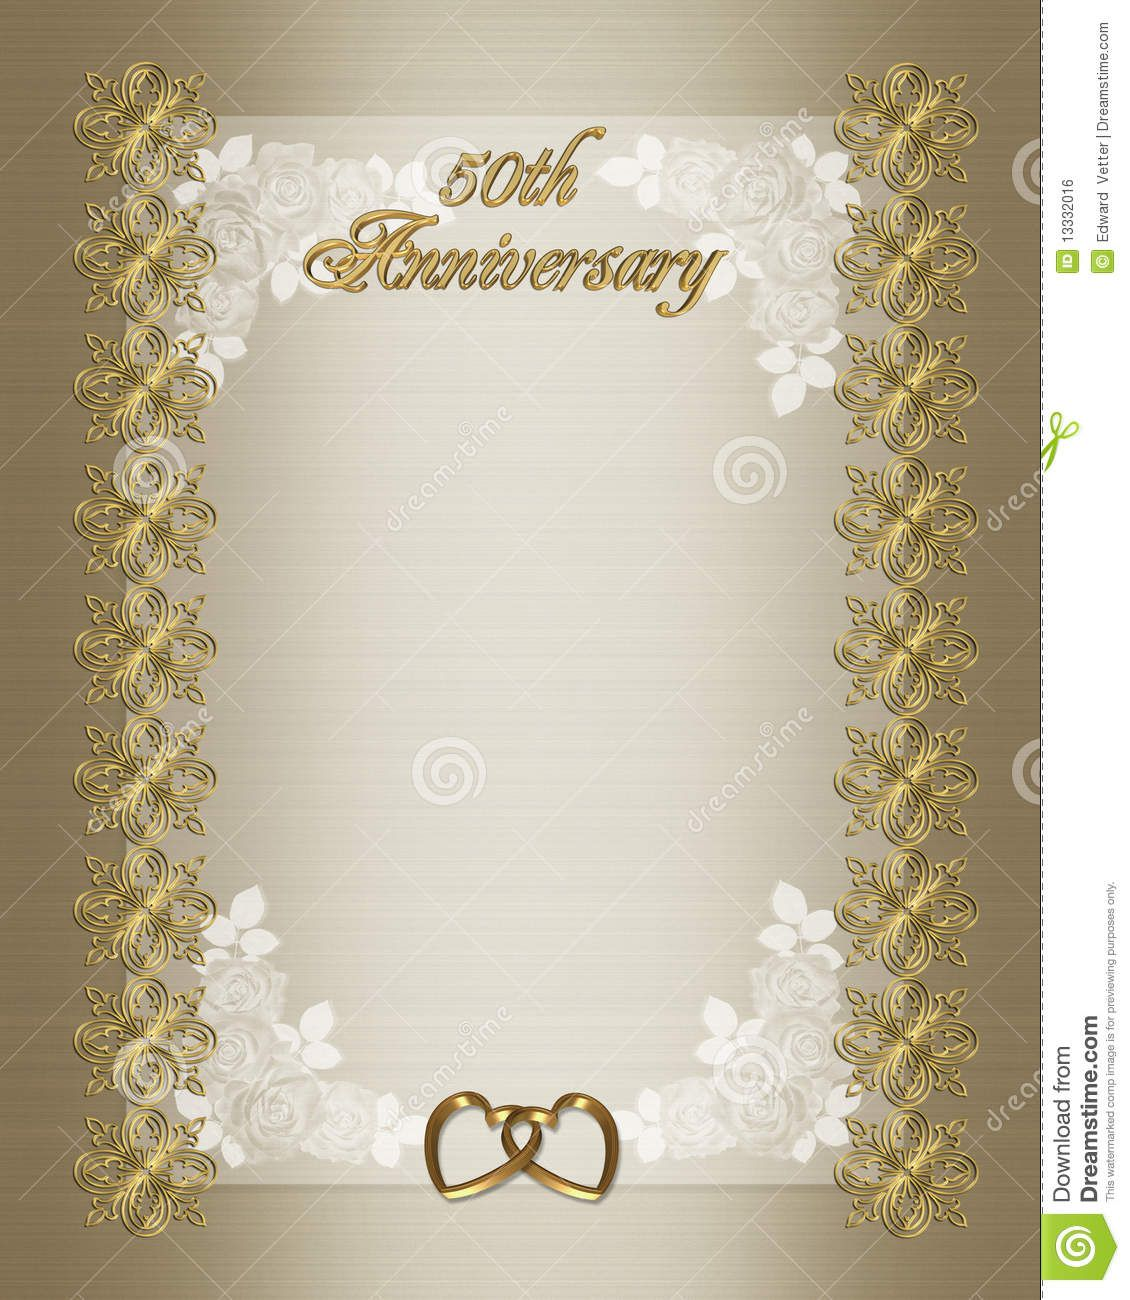 003 Fascinating Free 50th Anniversary Invitation Template For Word Picture Full